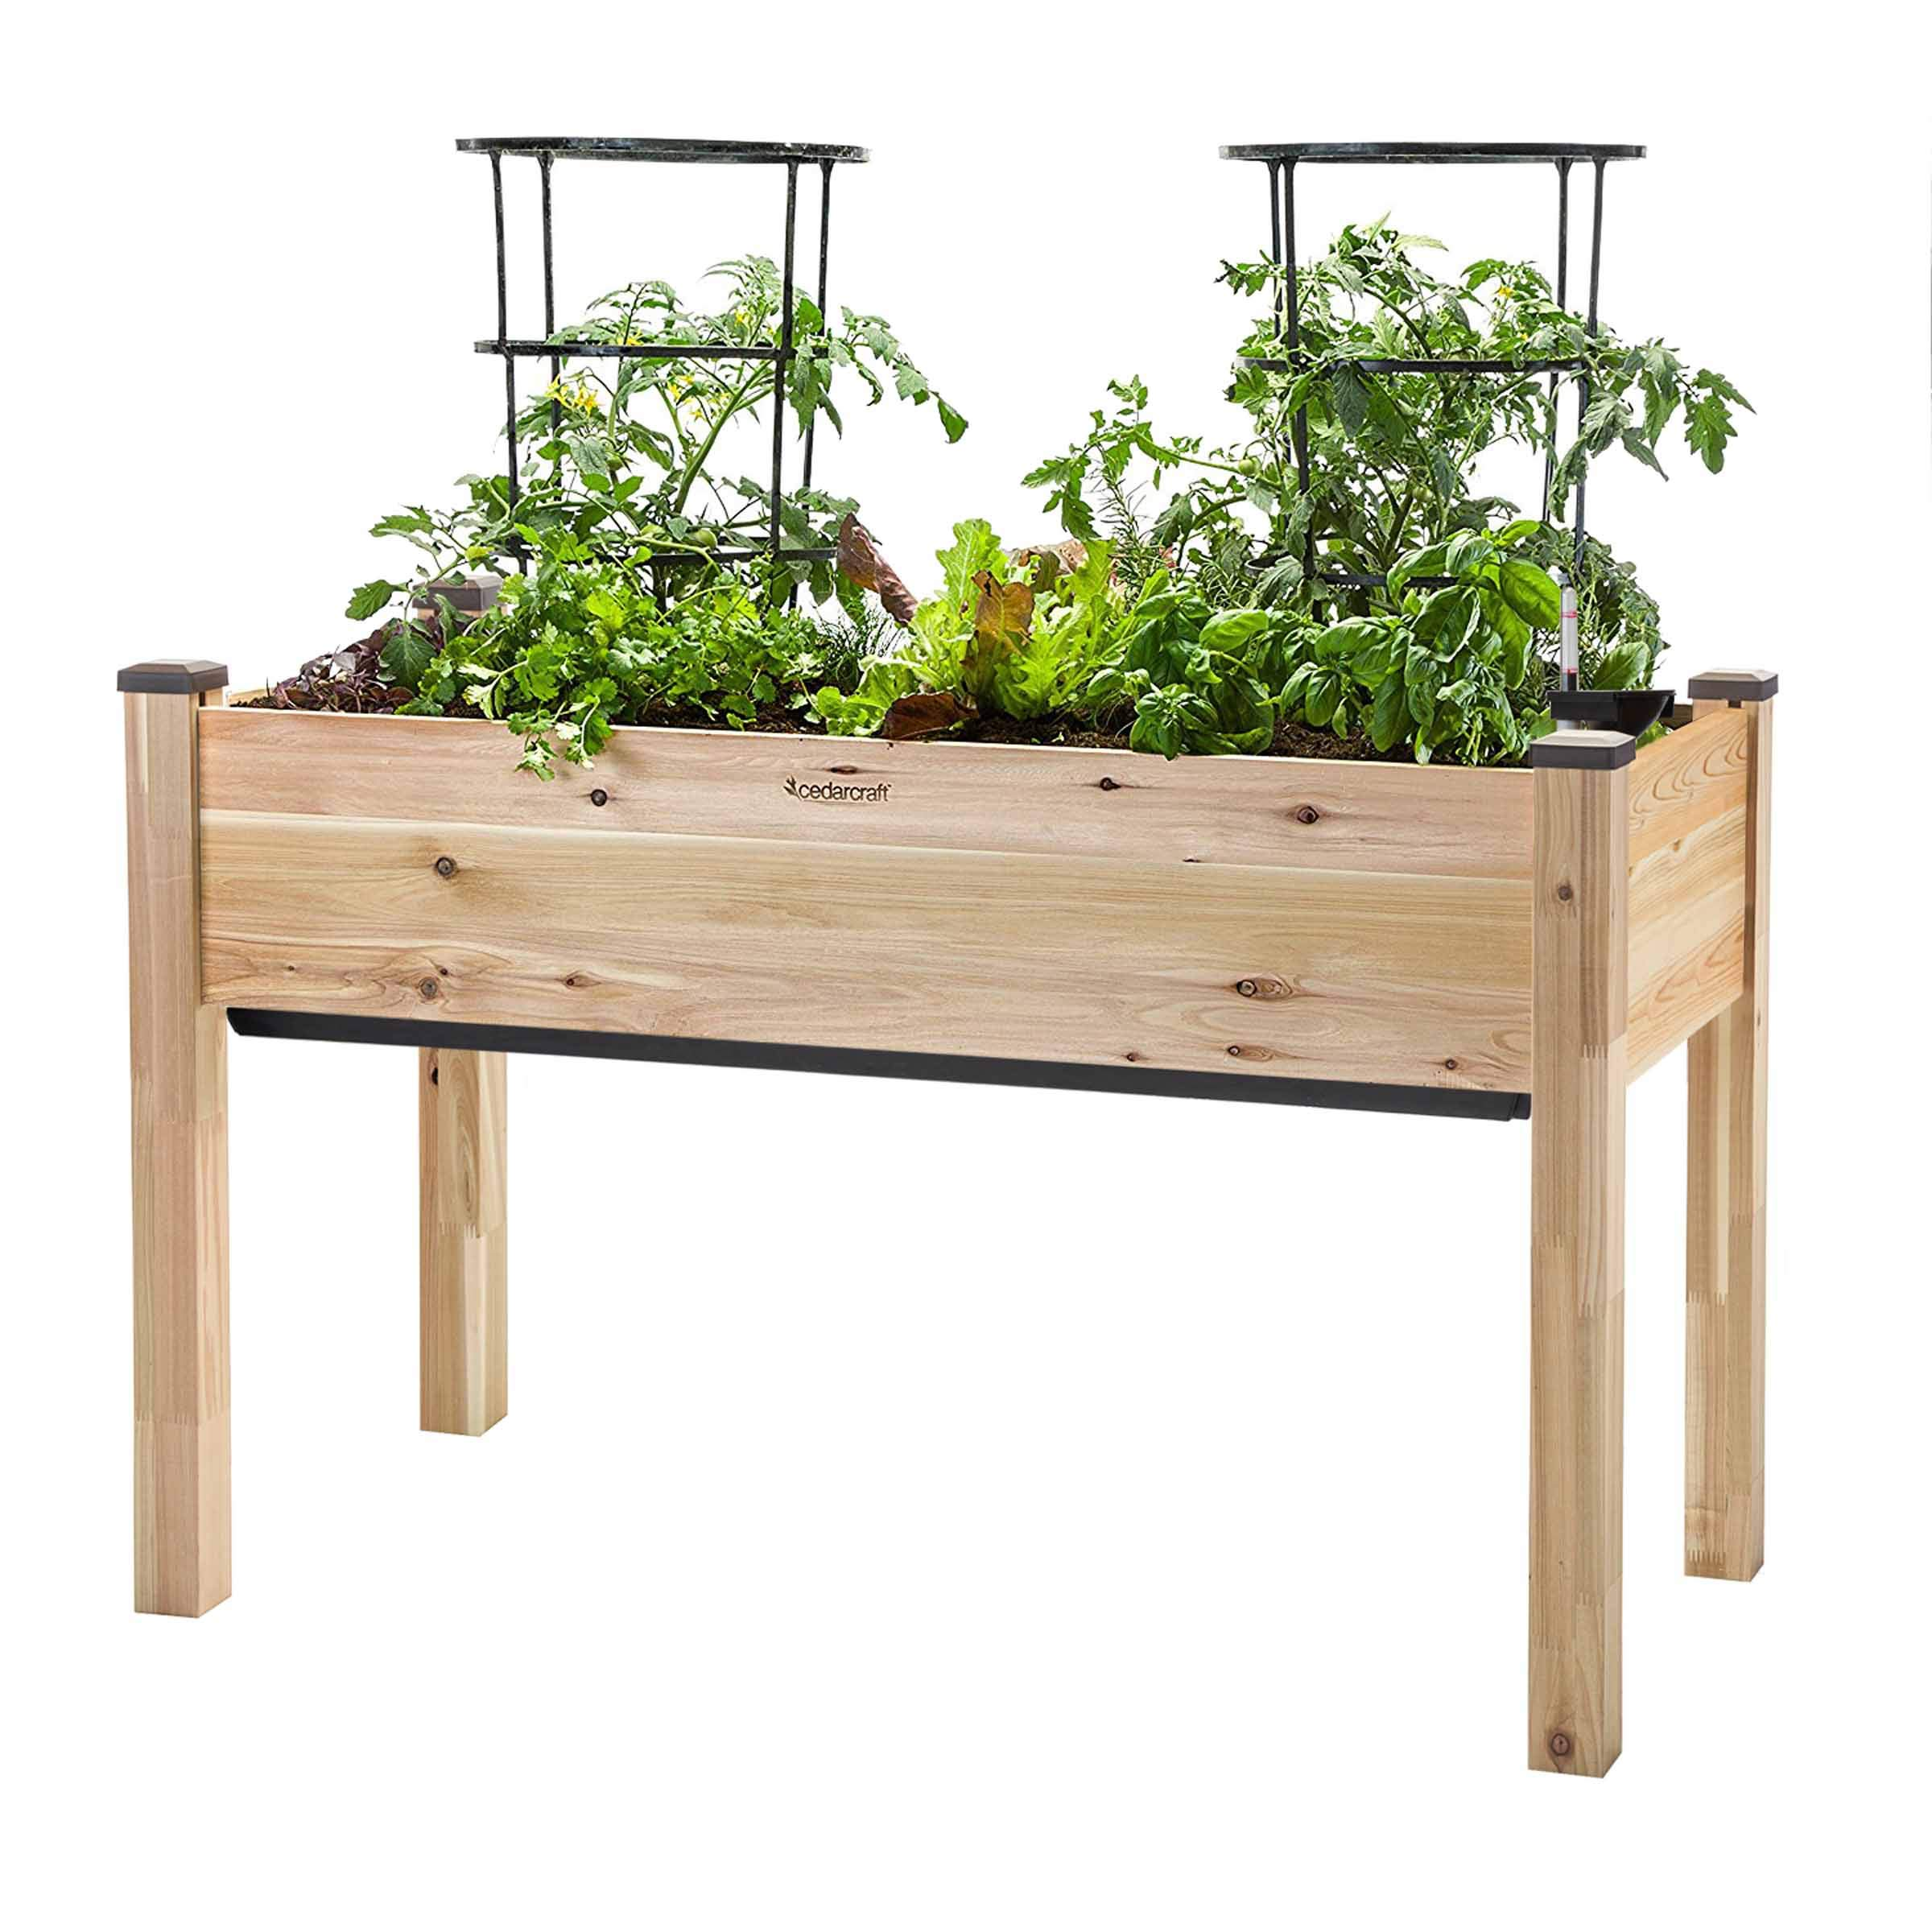 """CedarCraft Self-Watering Elevated Cedar Planter (22"""" x 48"""" x 30'' H) - The Flexibility of Container Gardening + The Convenience of a self-Watering System. Grow Healthier, More Productive Plants."""